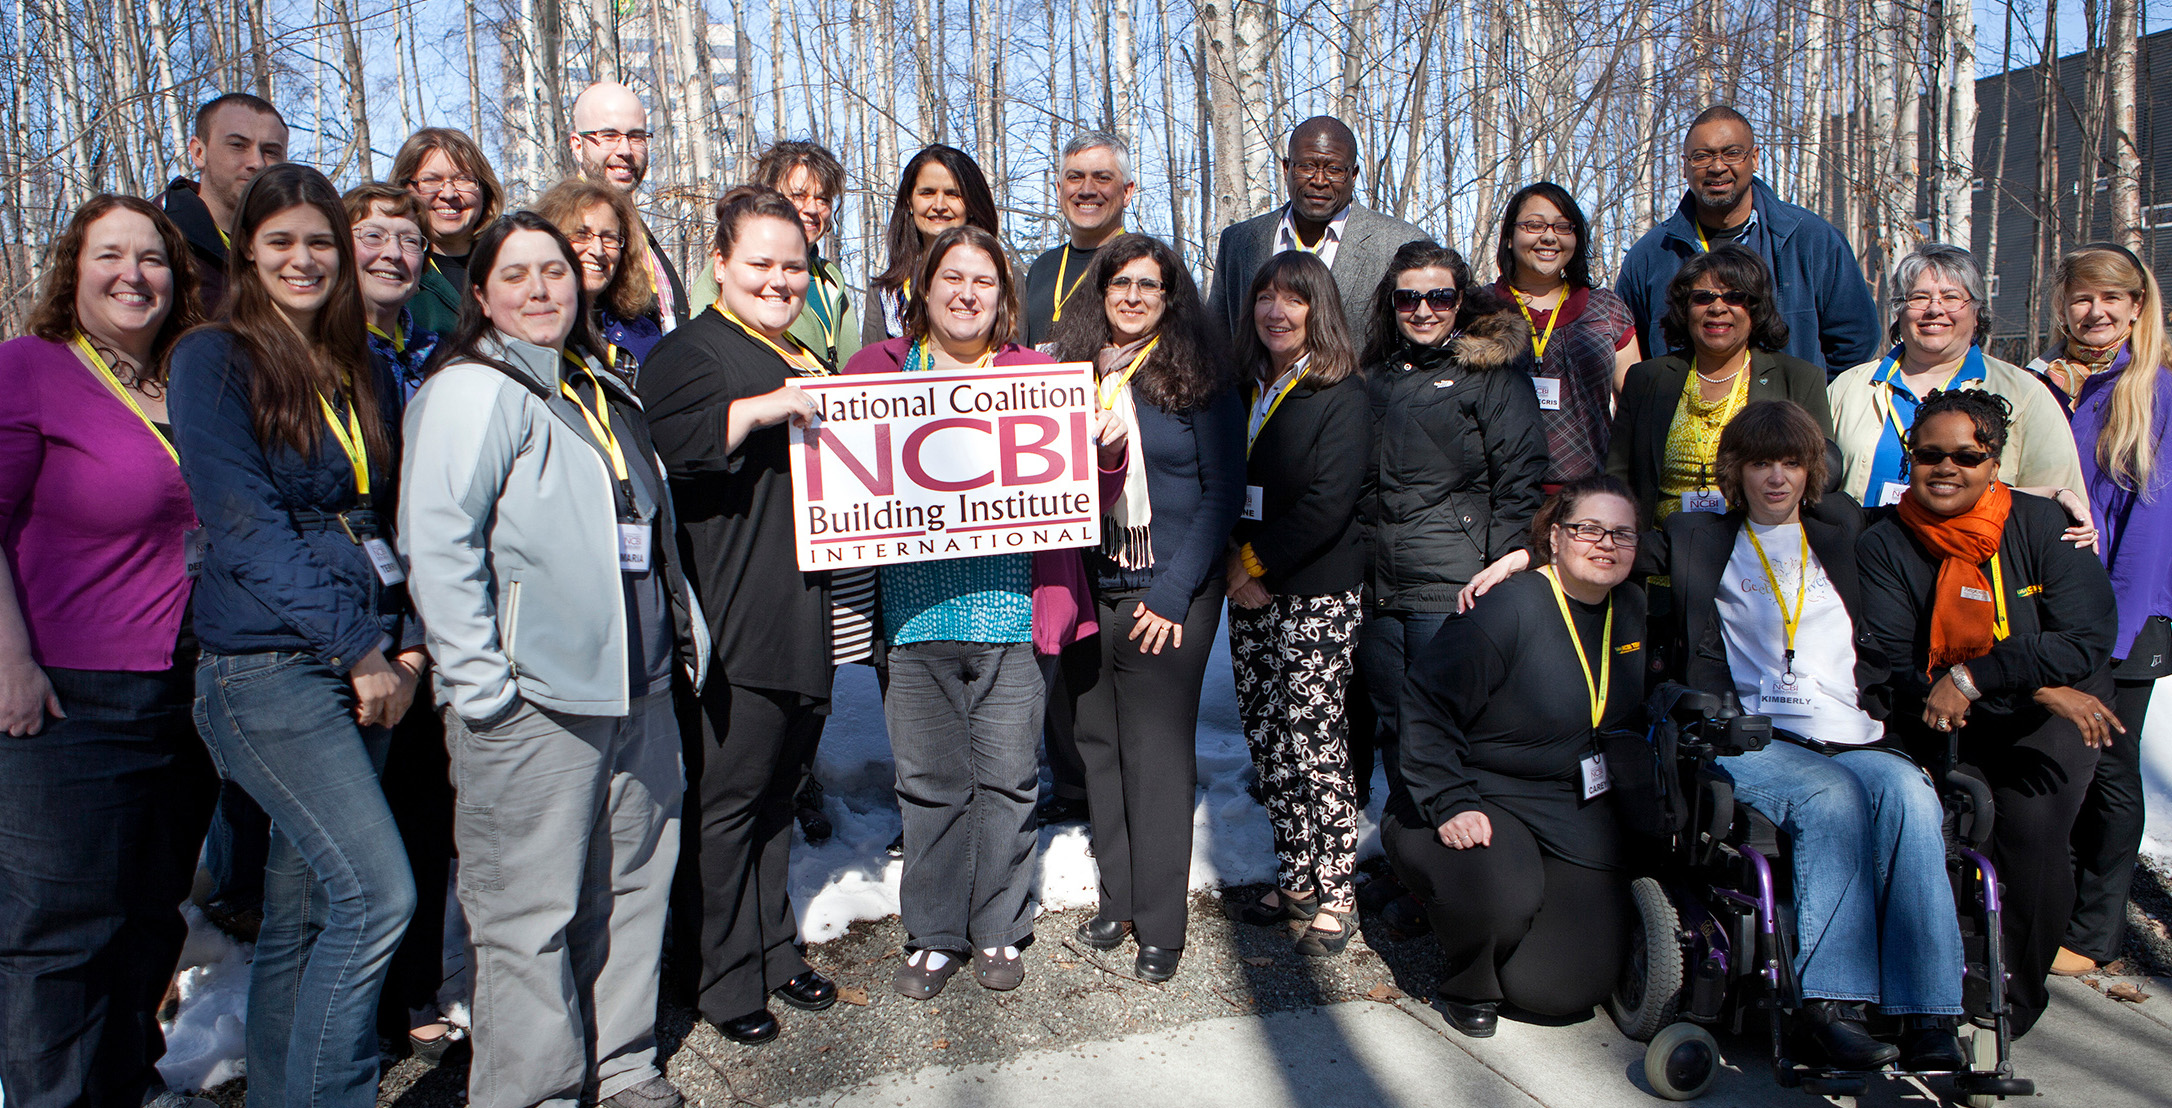 NCBI LEADERSHIP TEAM